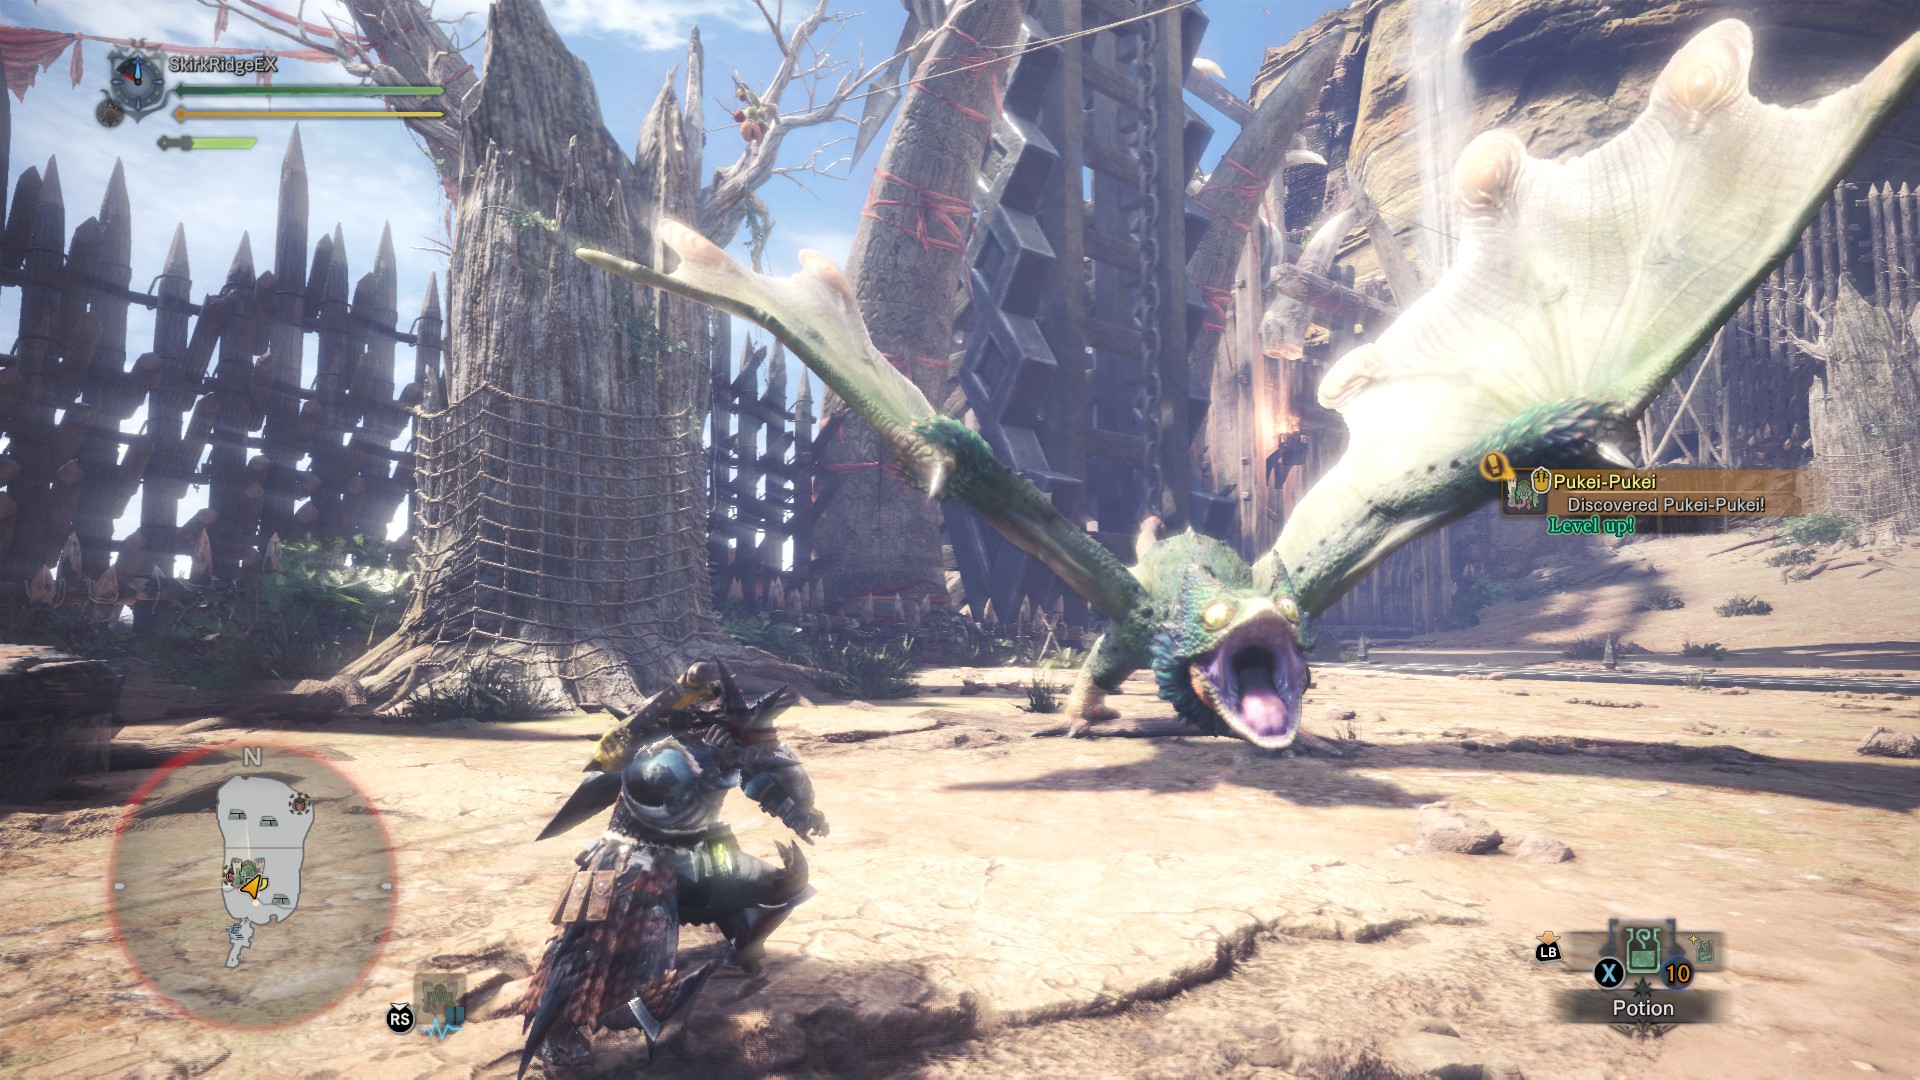 A Pukei-Pukei screaming at the player in the arena.